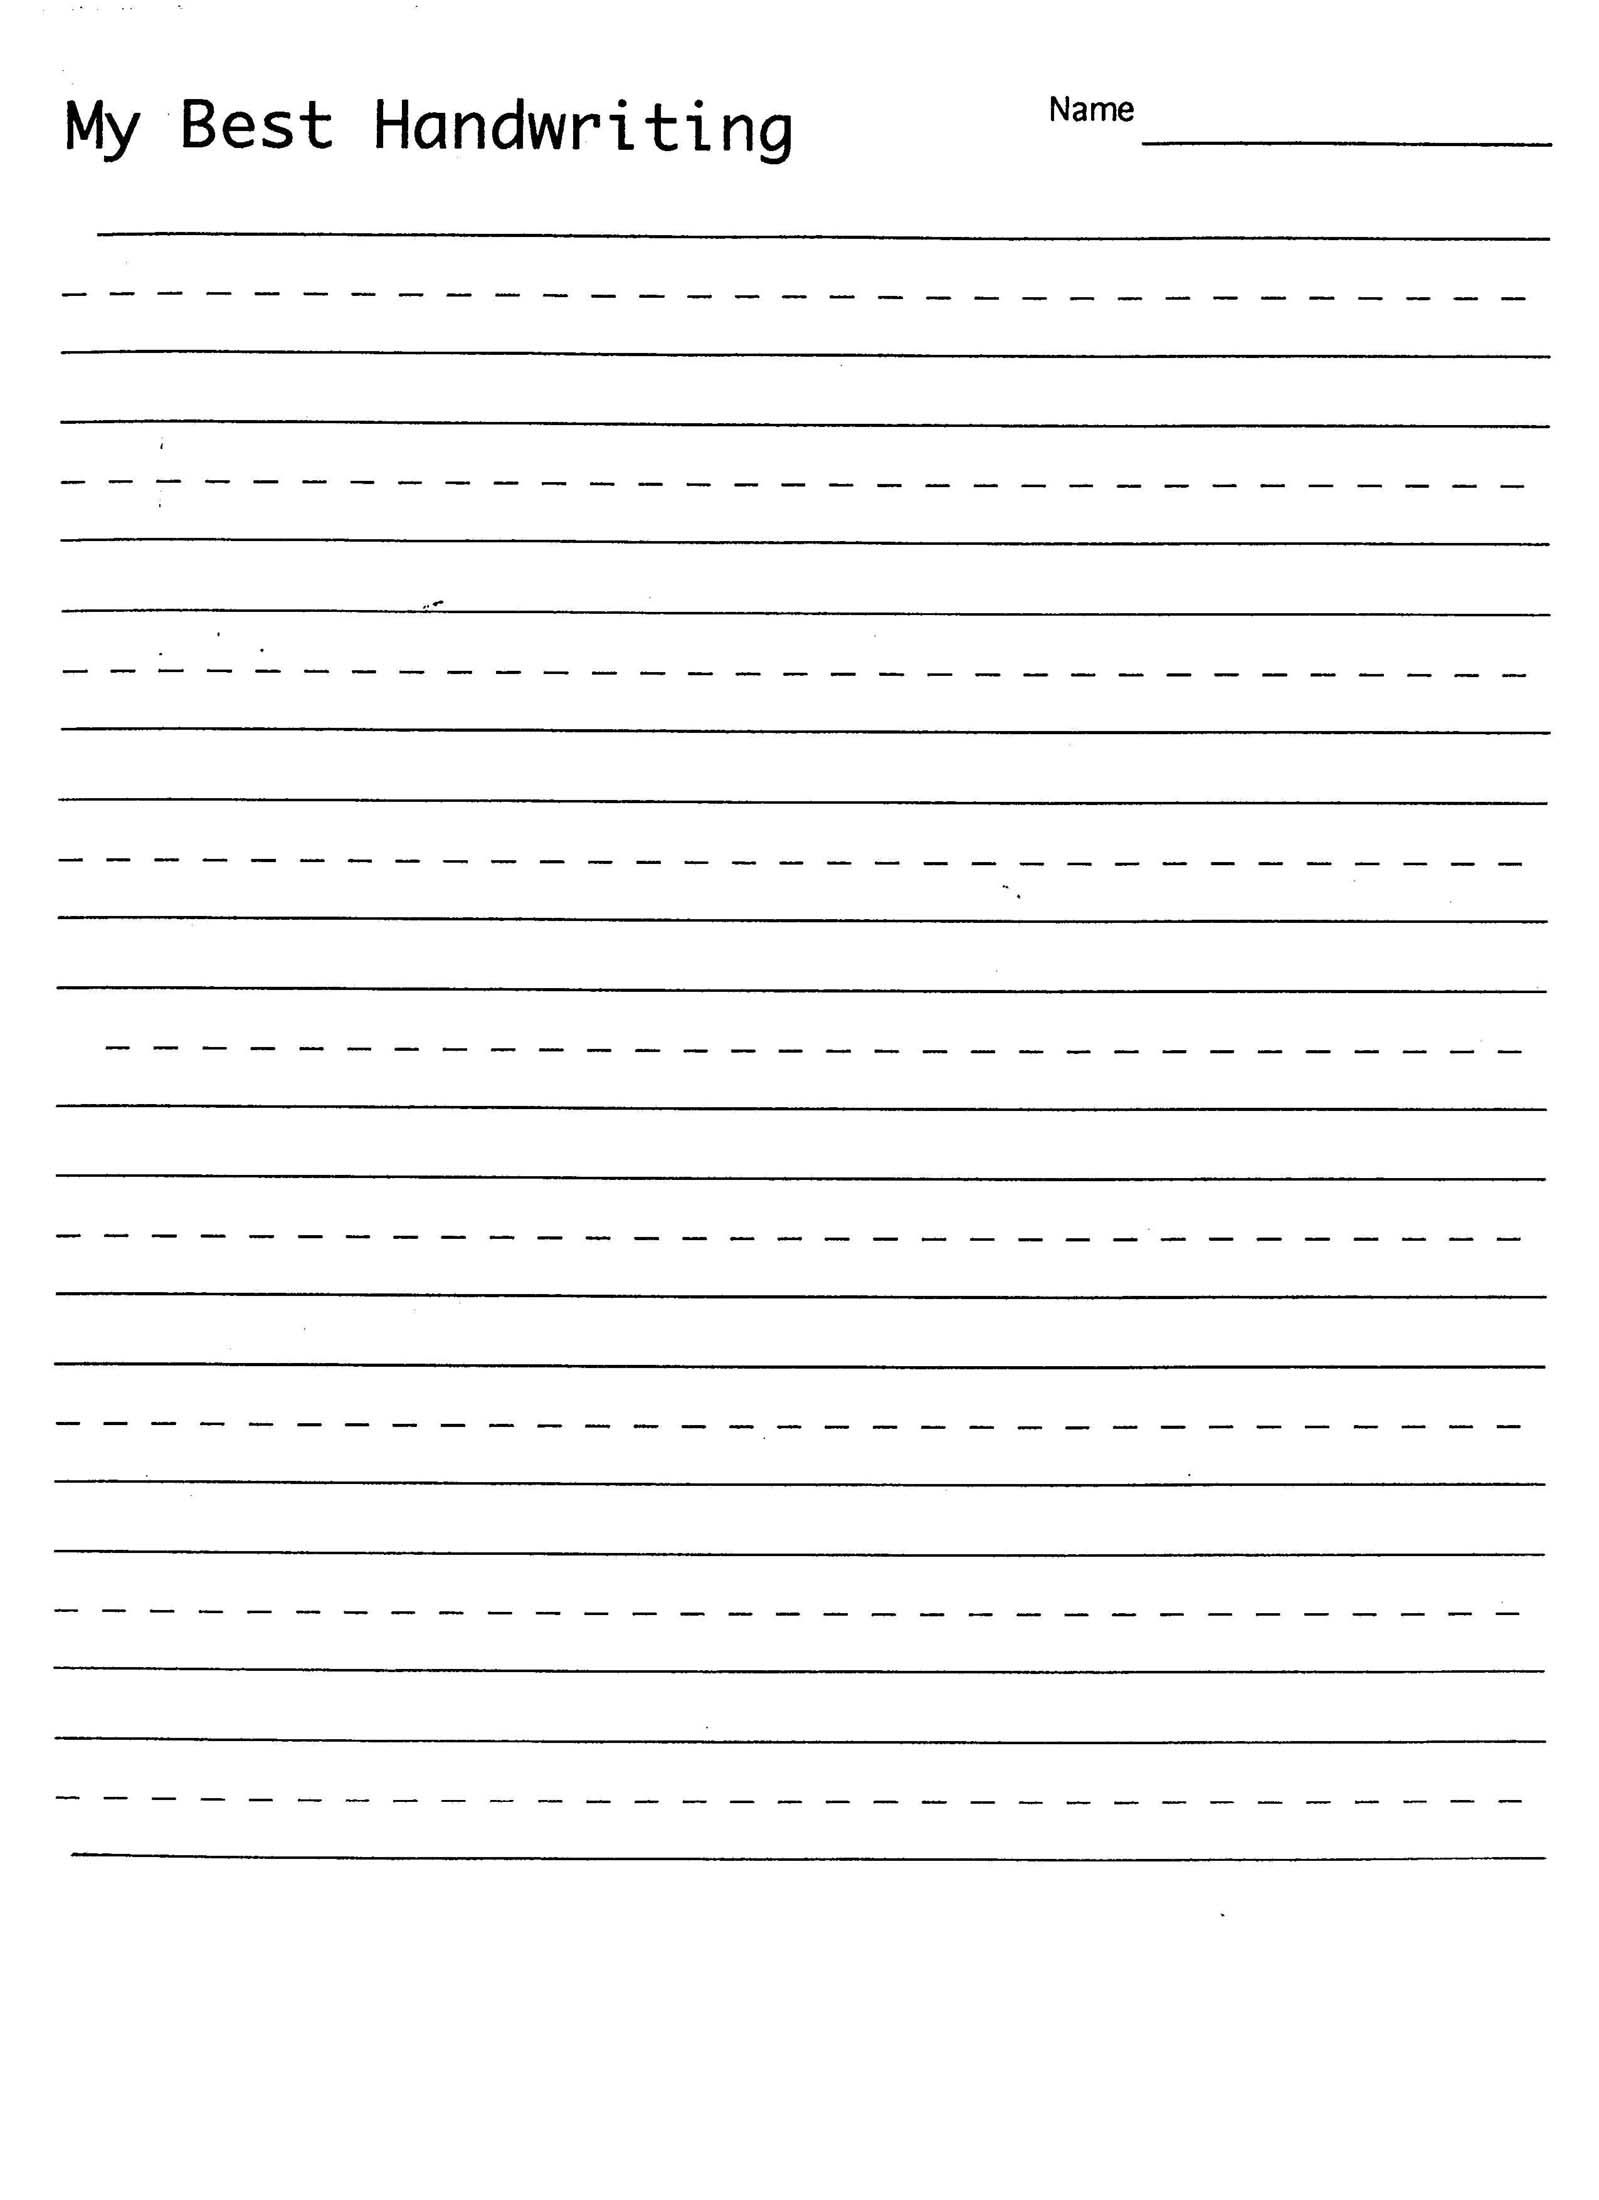 Free printable handwriting sheets for first grade